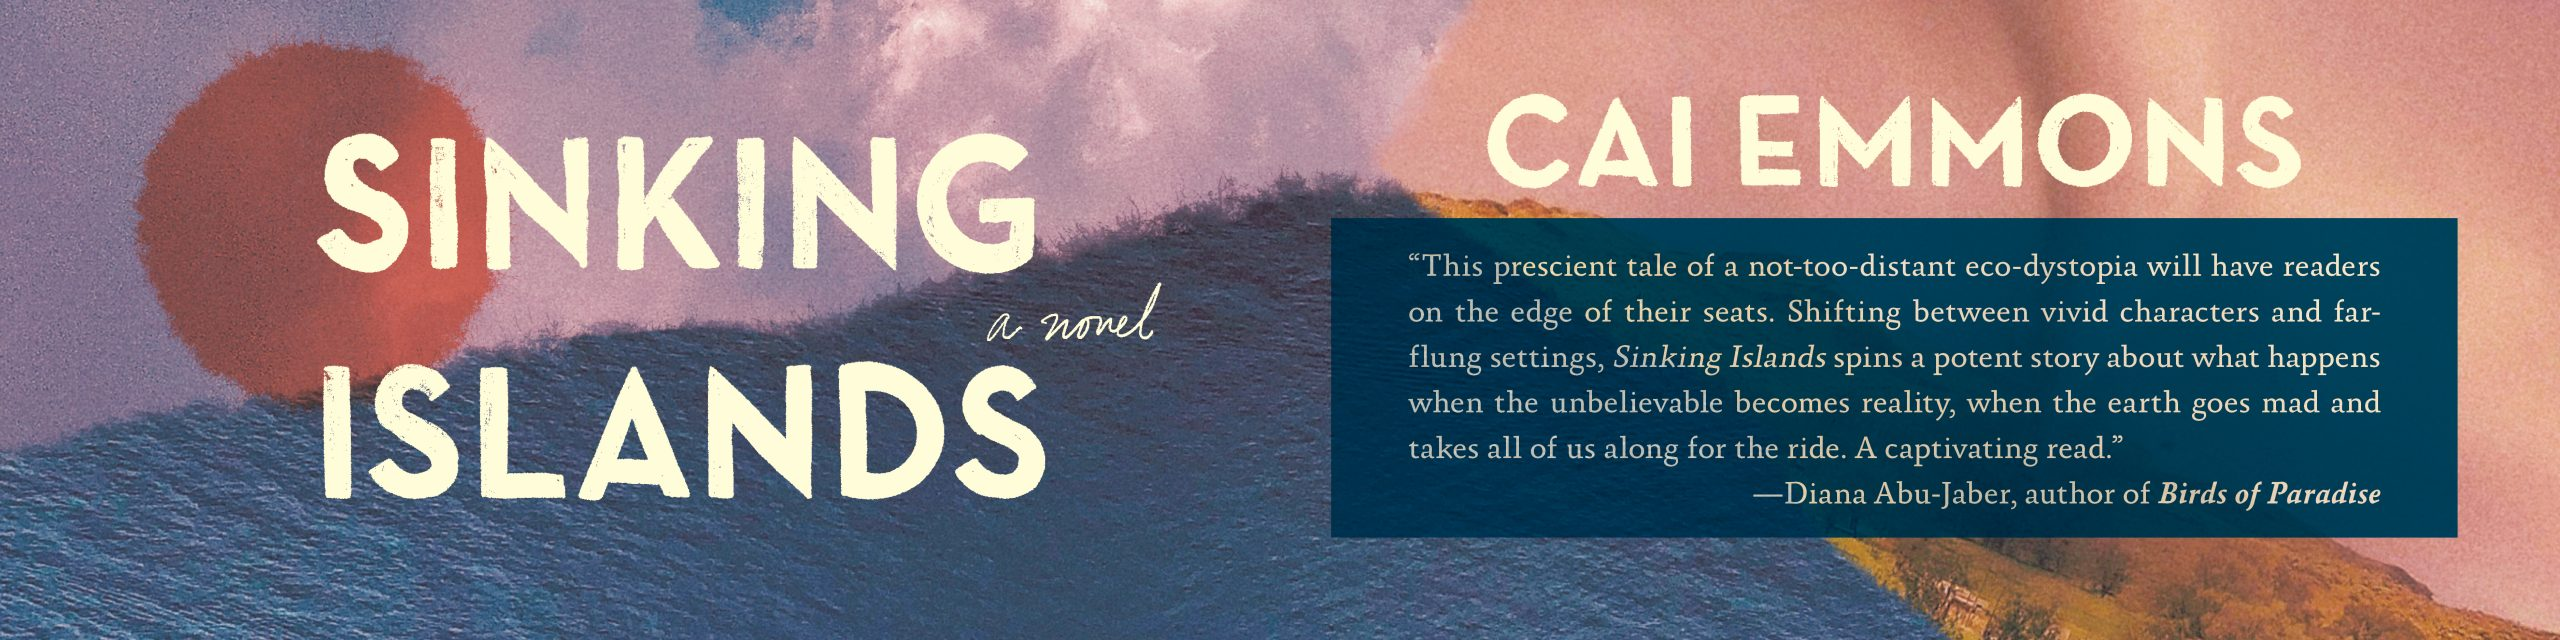 Decorative banner highlighting Sinking Islands by Cai Emmons with a blurb by Diana Abu-Jaber